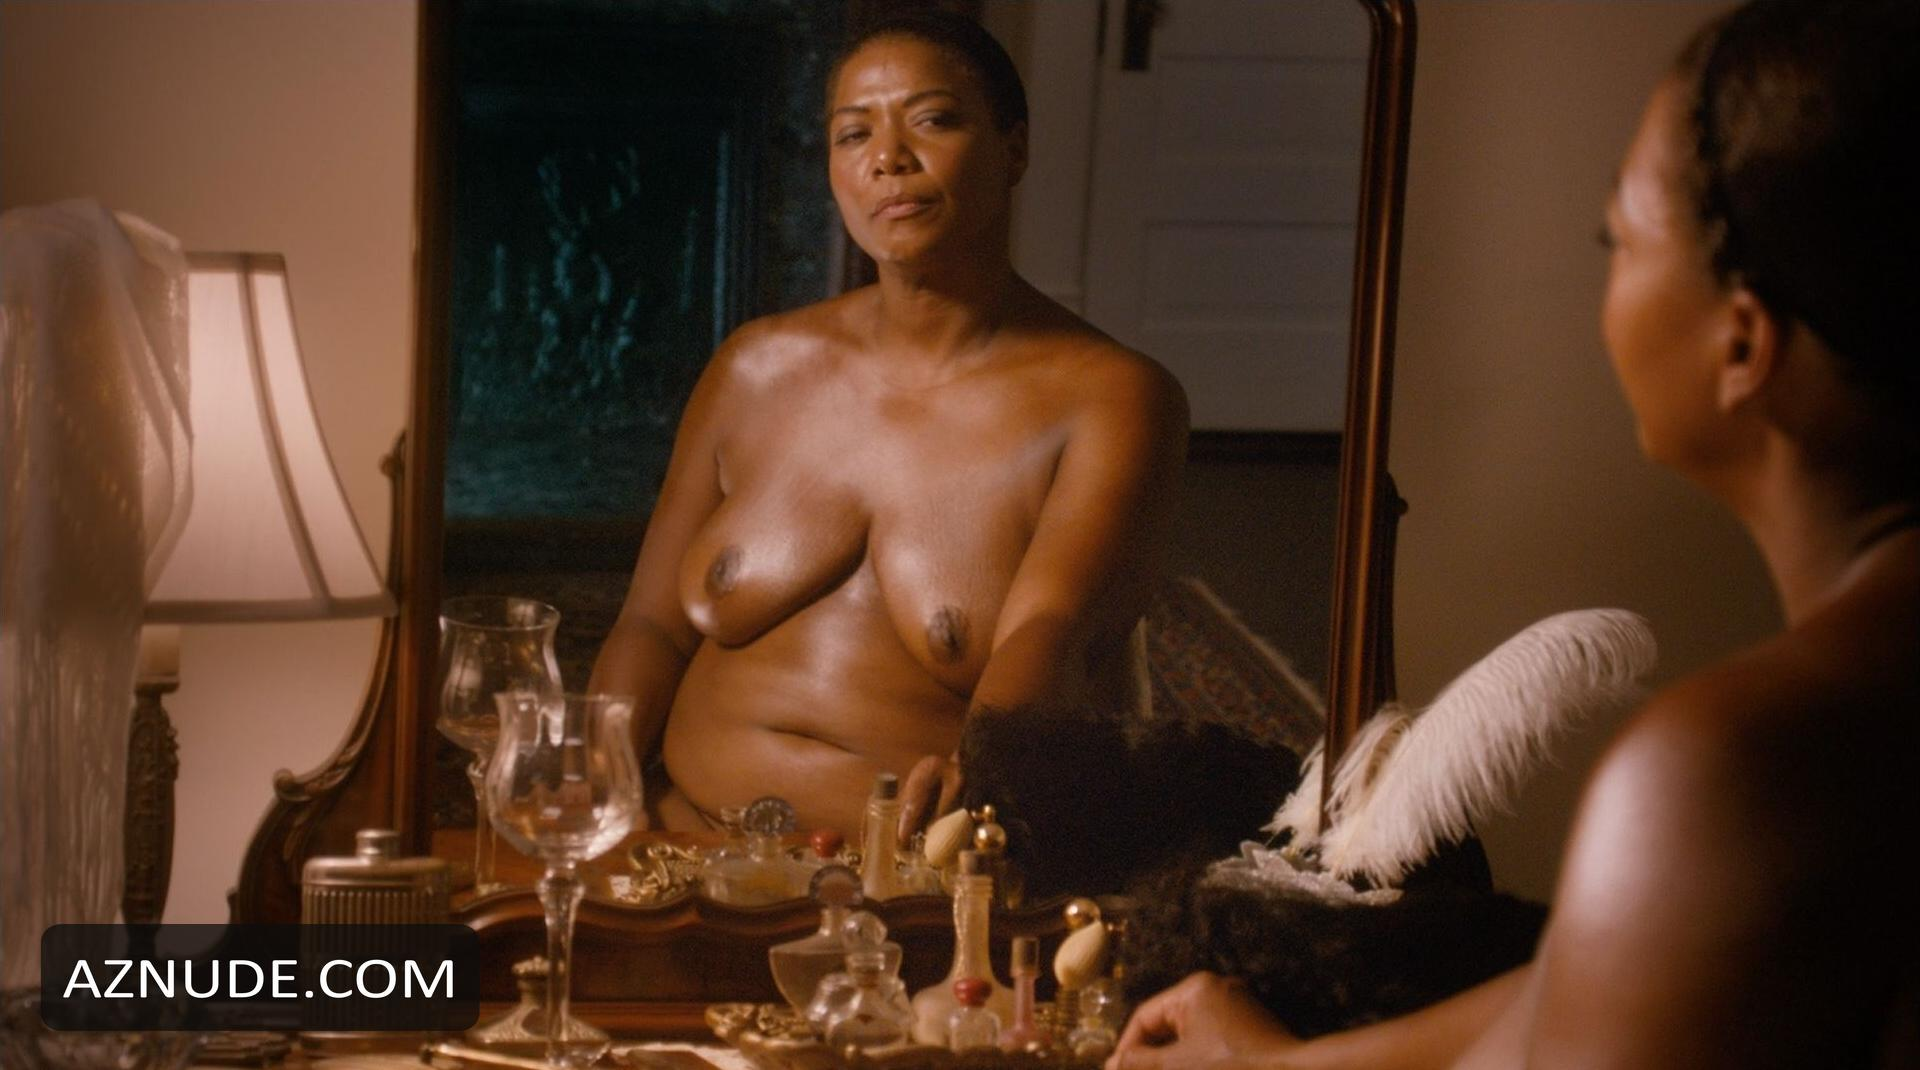 Speaking, Queen latifah nu video apologise, but